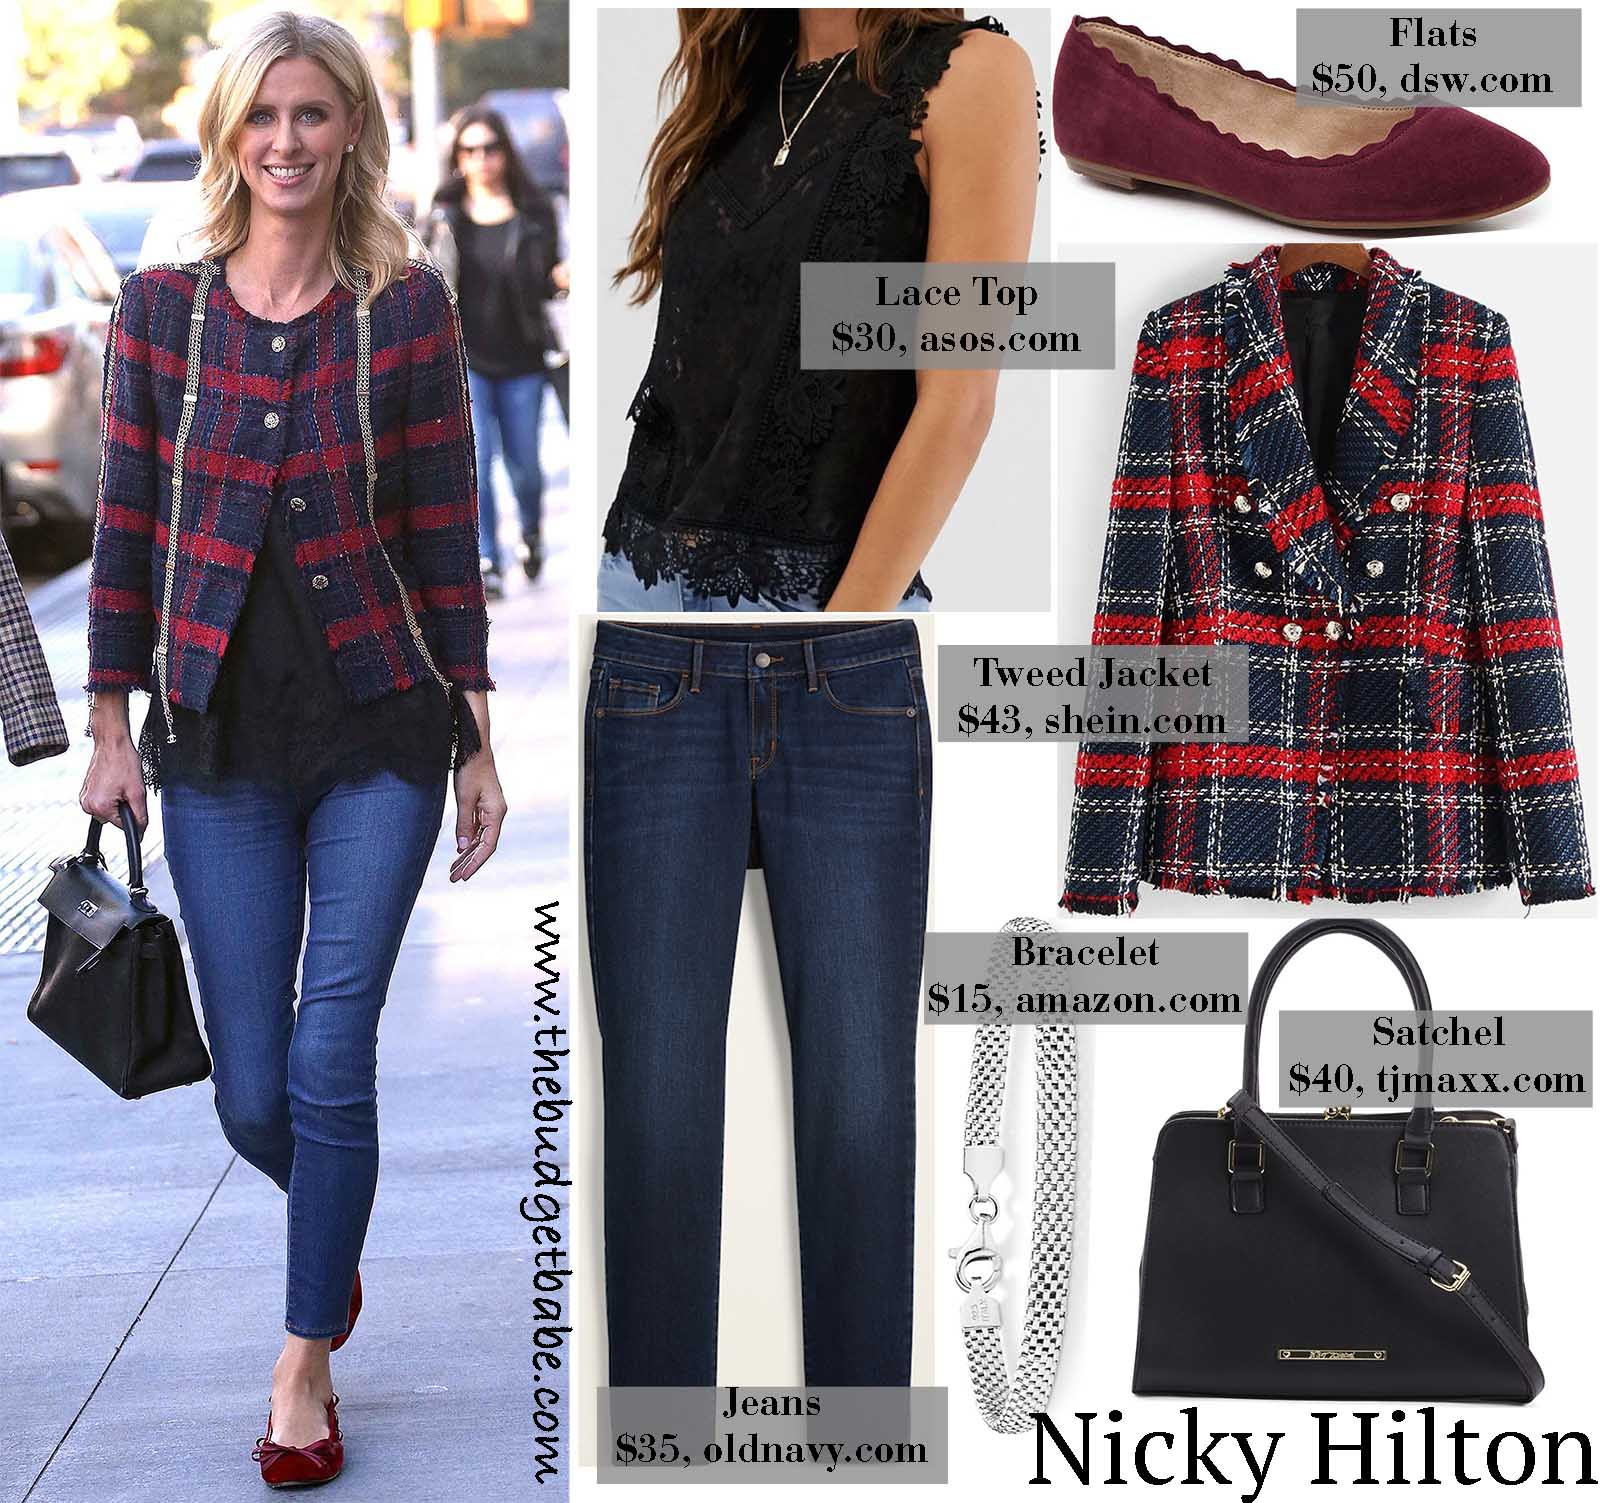 Nicky Hilton's tweed jacket is perfect for winter!